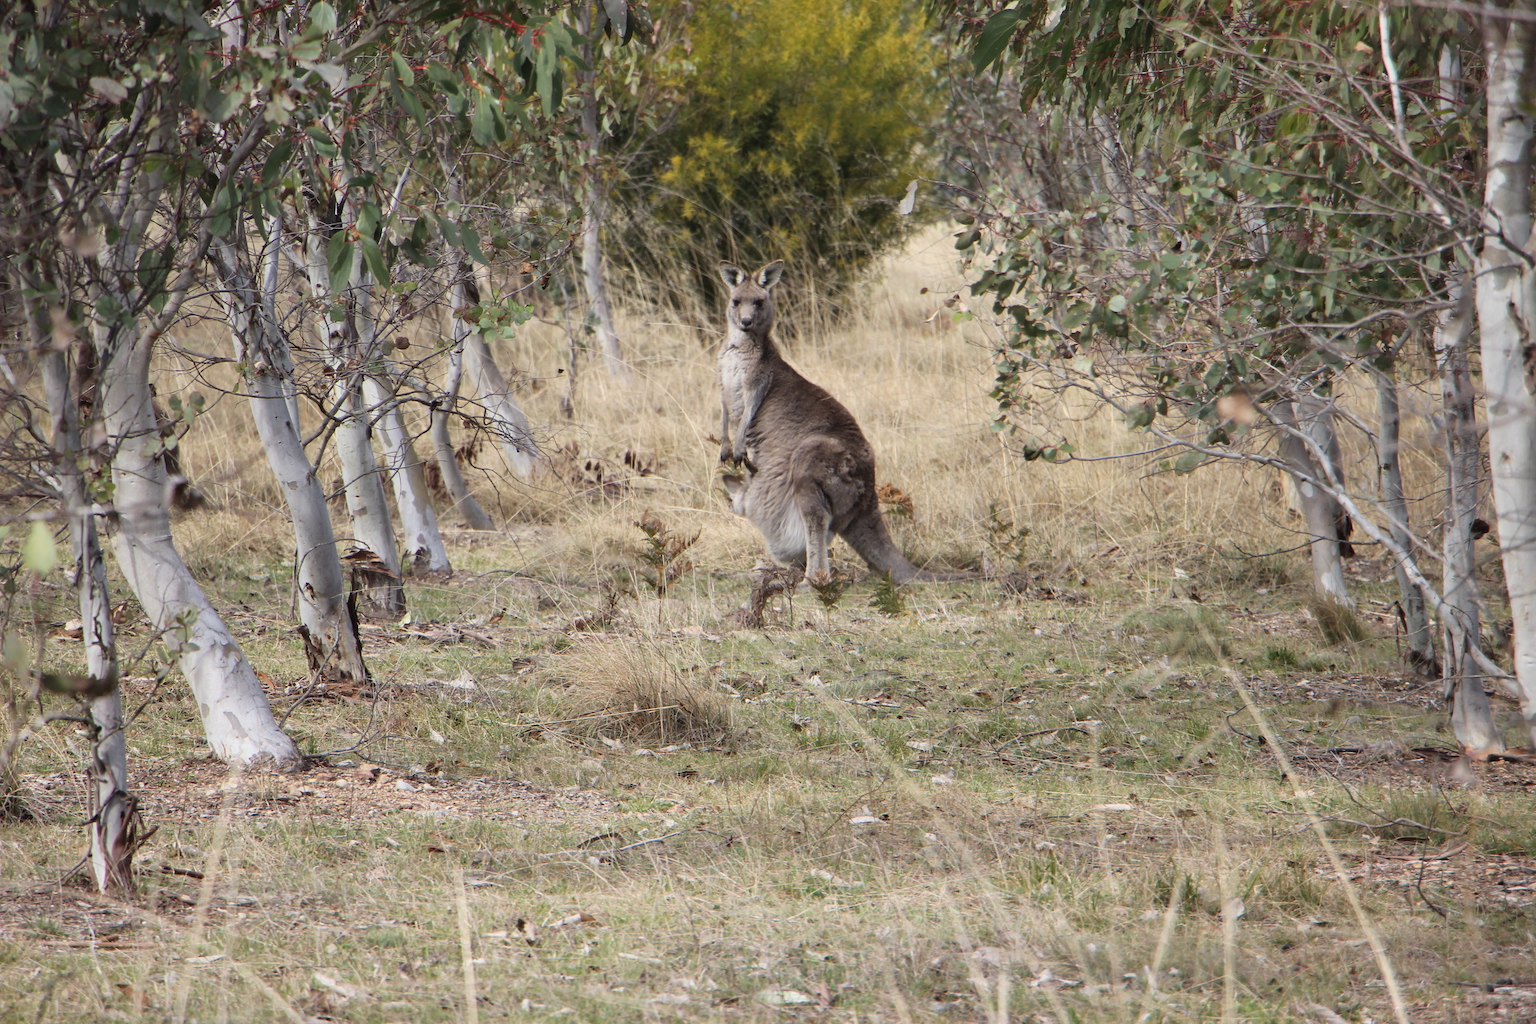 Kangaroos on the property at Majestic View Cottages NSW. Credit: Katrina Holden